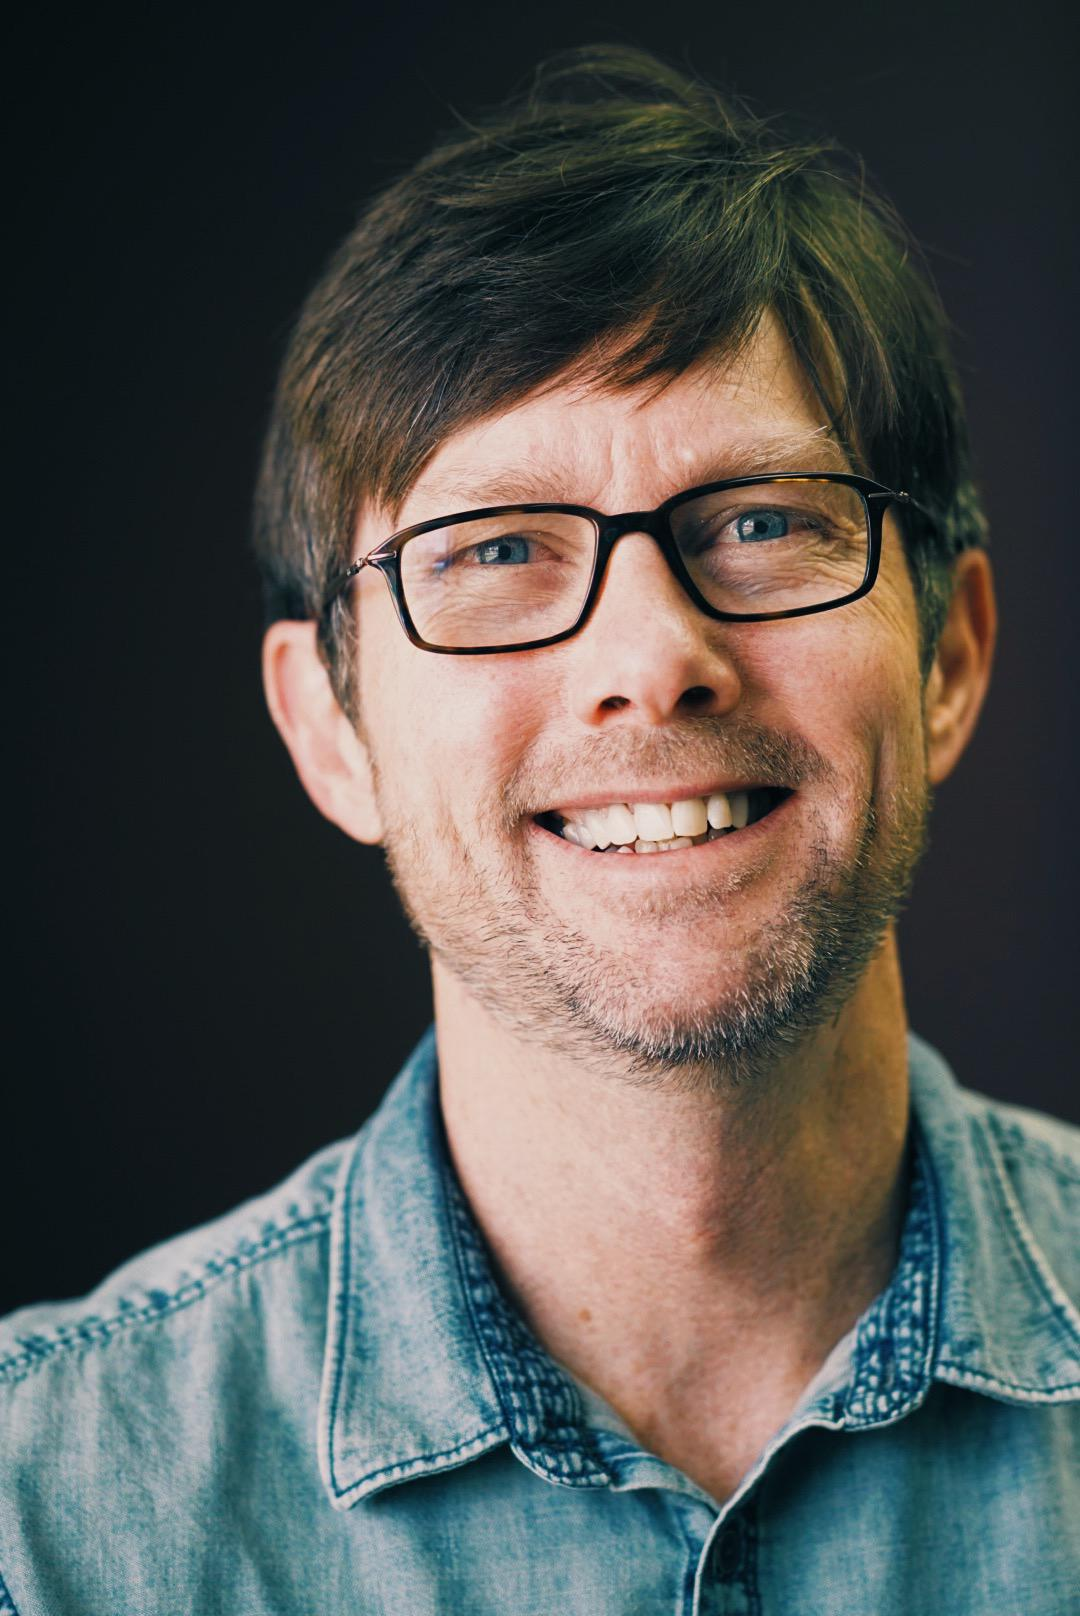 RICK BROWN: Church is hard work and requires effort